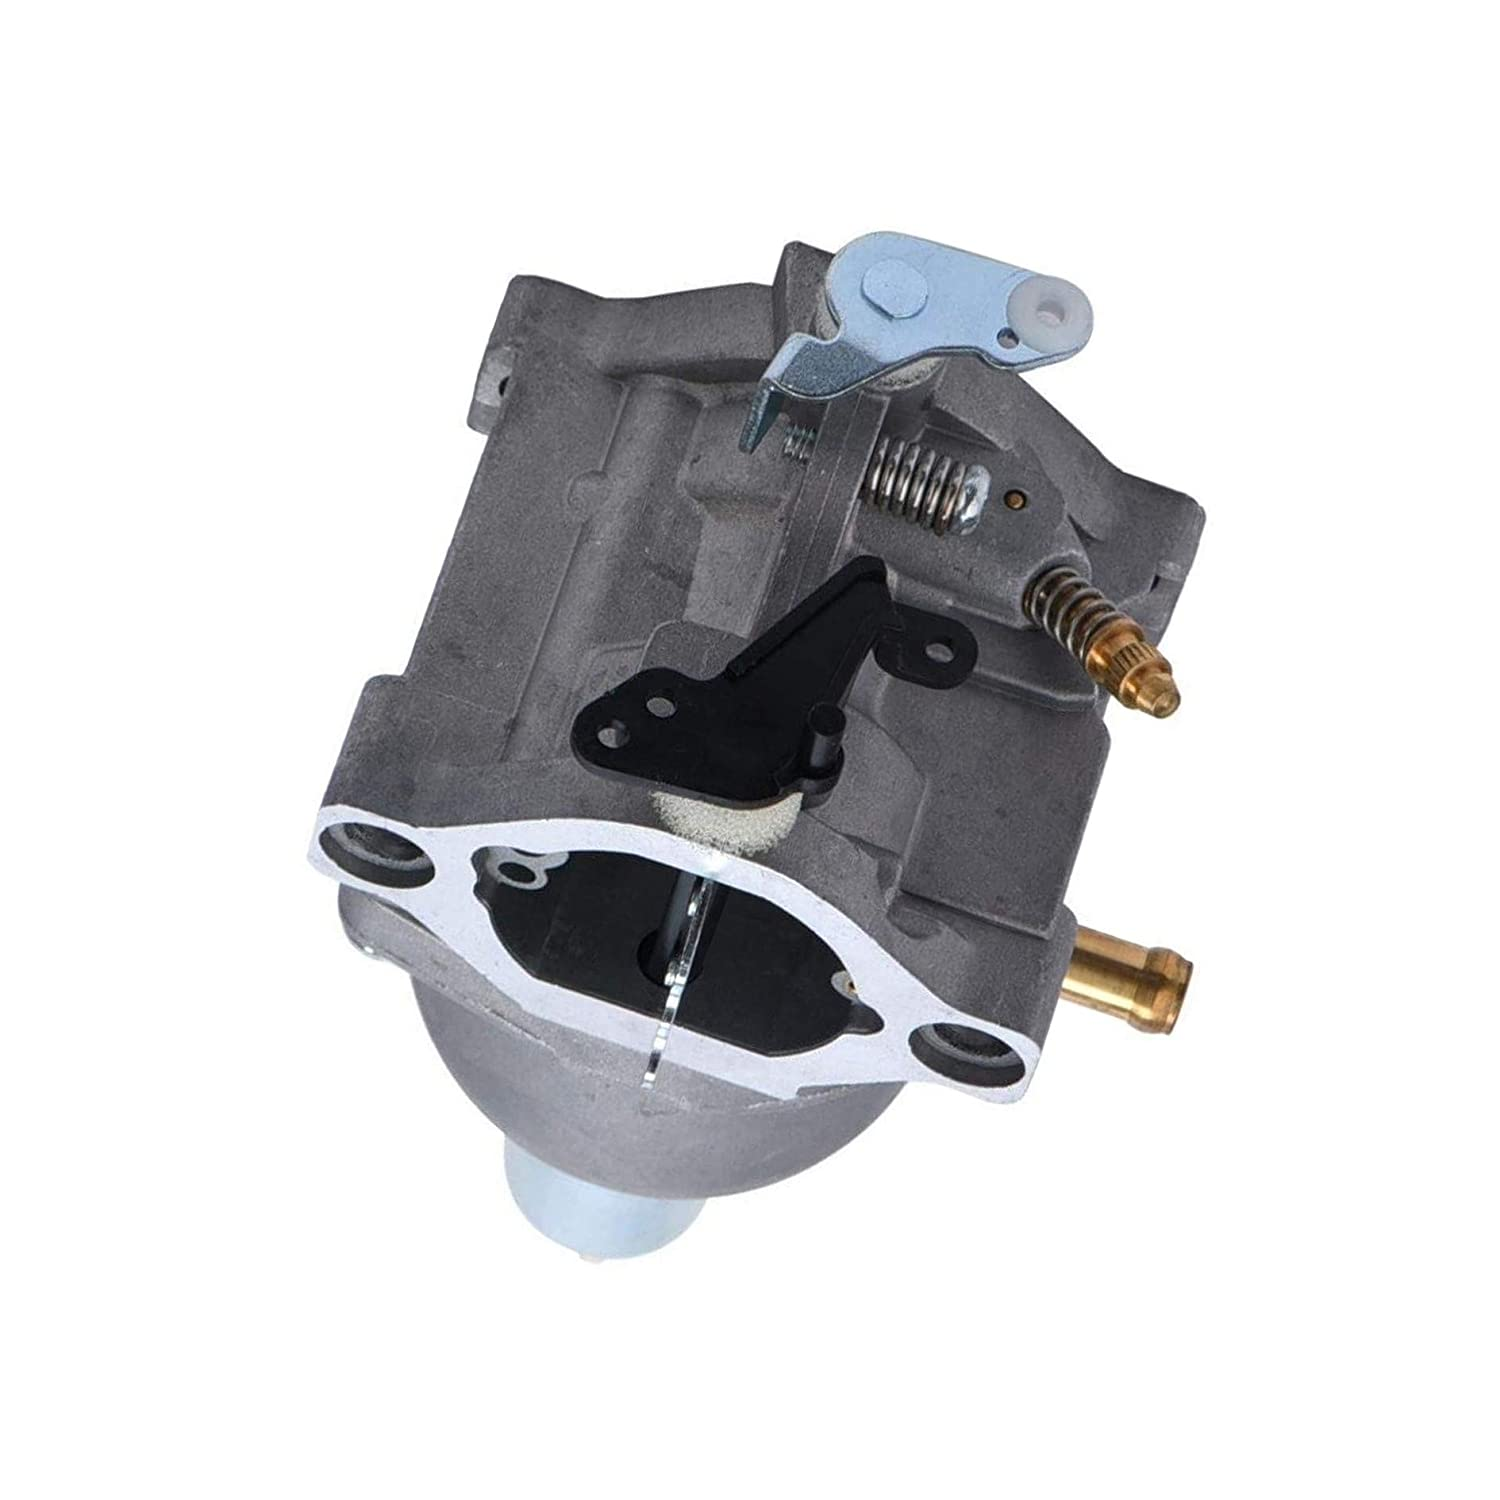 mdairc Carburetor Fits Briggs and Stratton 791230 699709 699804 20hp 21hp 23hp 24hp 25hp Intek V-Twin